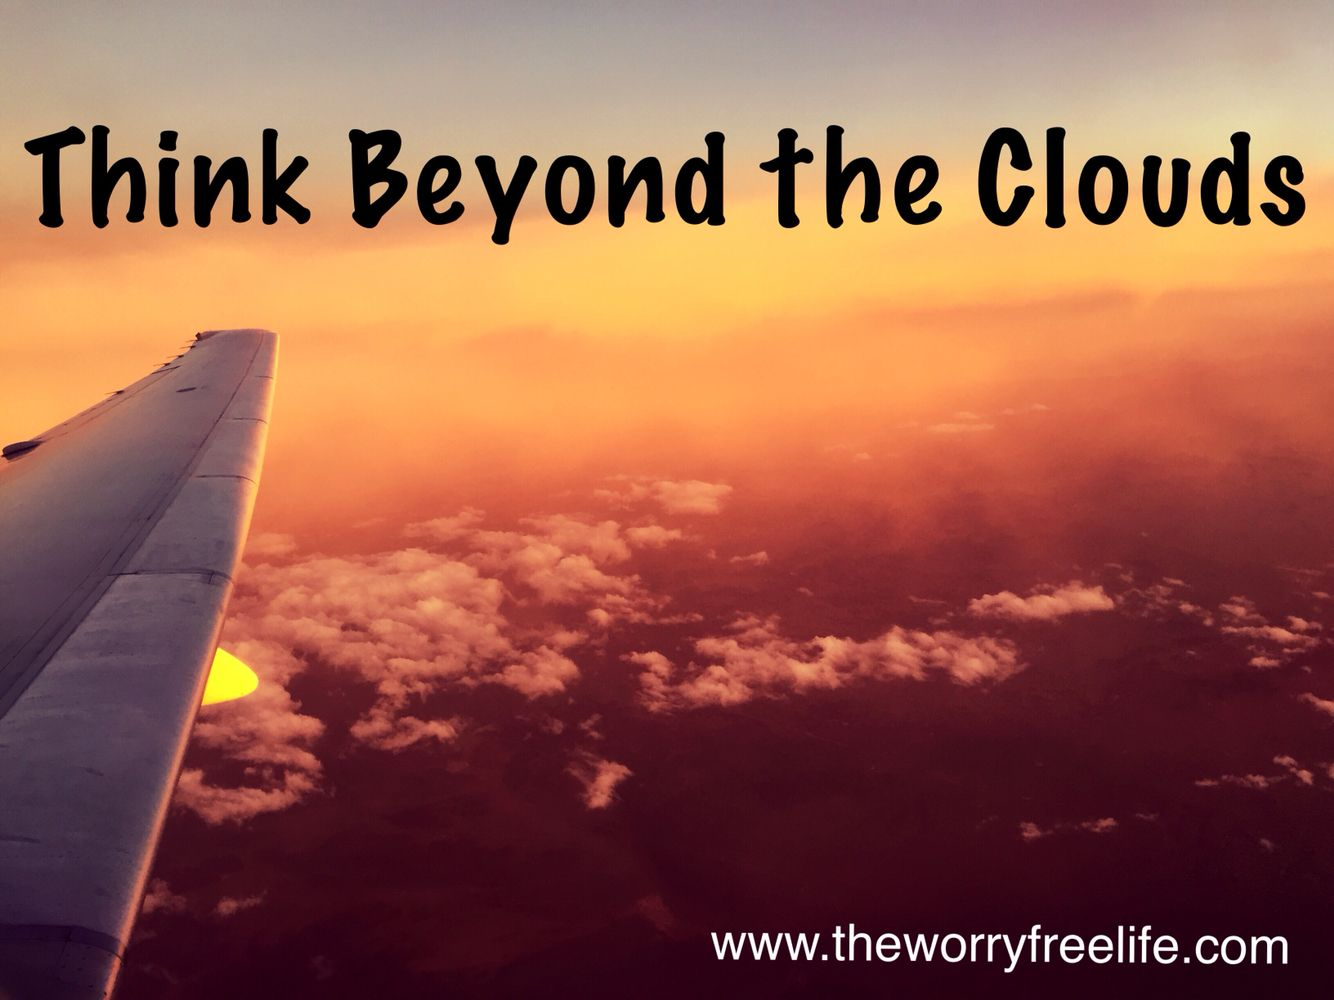 Reach For Clouds >> Think Beyond The Clouds Reach For The Stars Inspiring Quotes